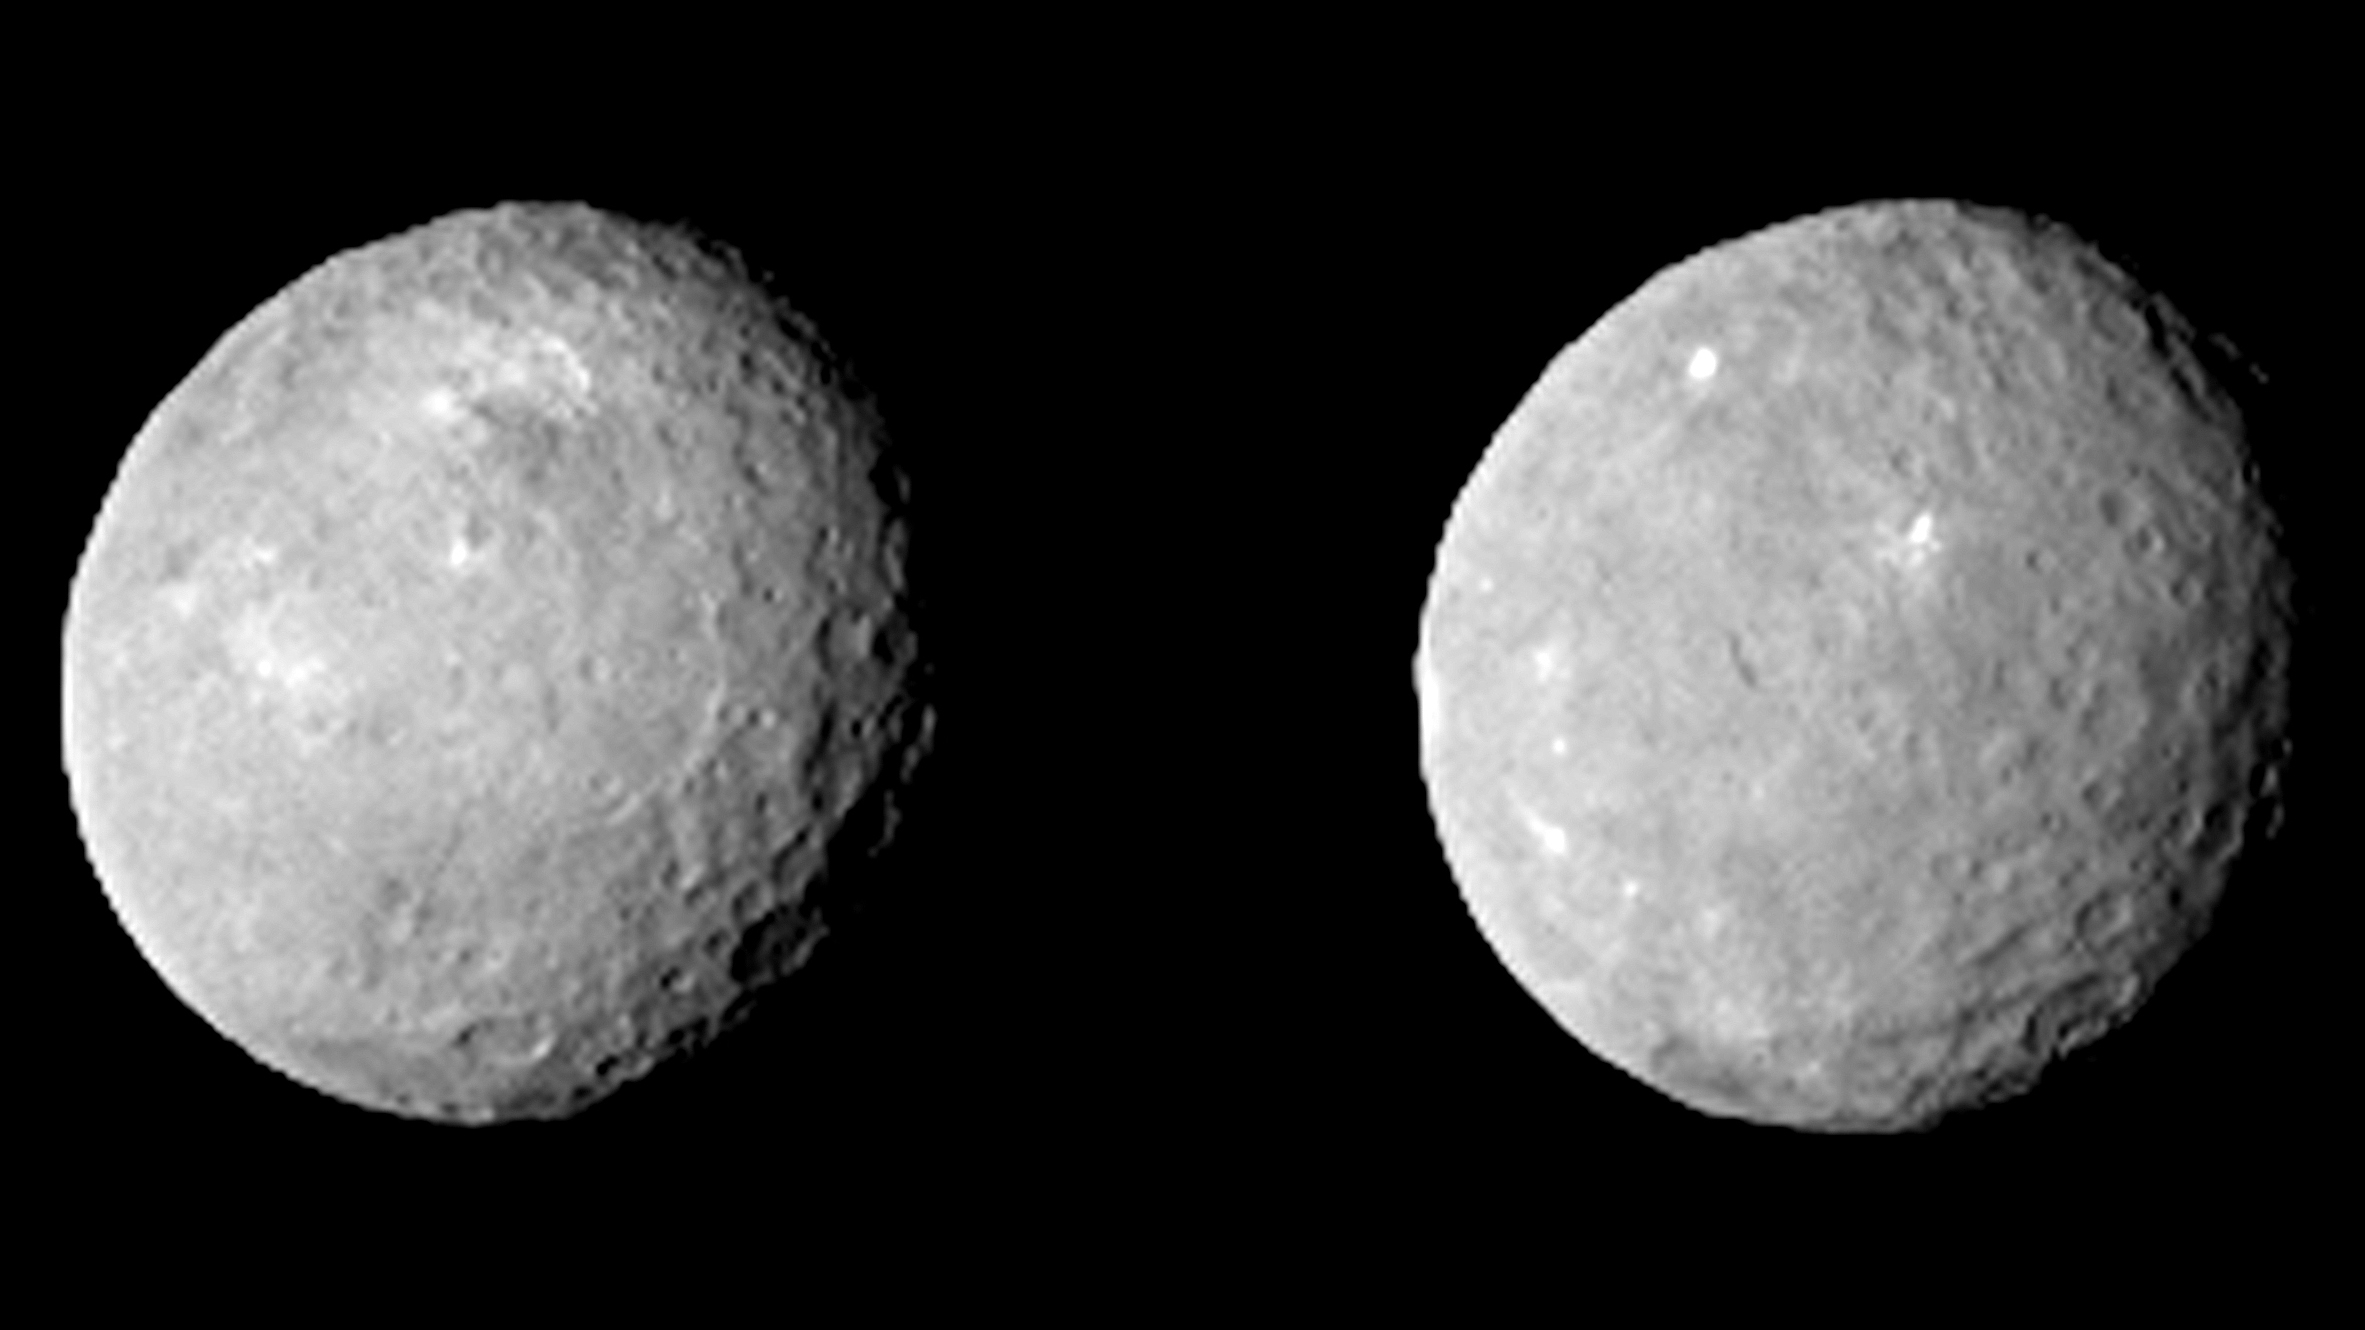 These two views of Ceres were acquired by NASA's Dawn spacecraft on Feb. 12, 2015, from a distance of about 52,000 miles (83,000 kilometers) as the dwarf planet rotated. The images, which were taken about 10 hours apart, have been magnified from their original size. Credit: NASA/JPL-Caltech/UCLA/MPS/DLR/IDA